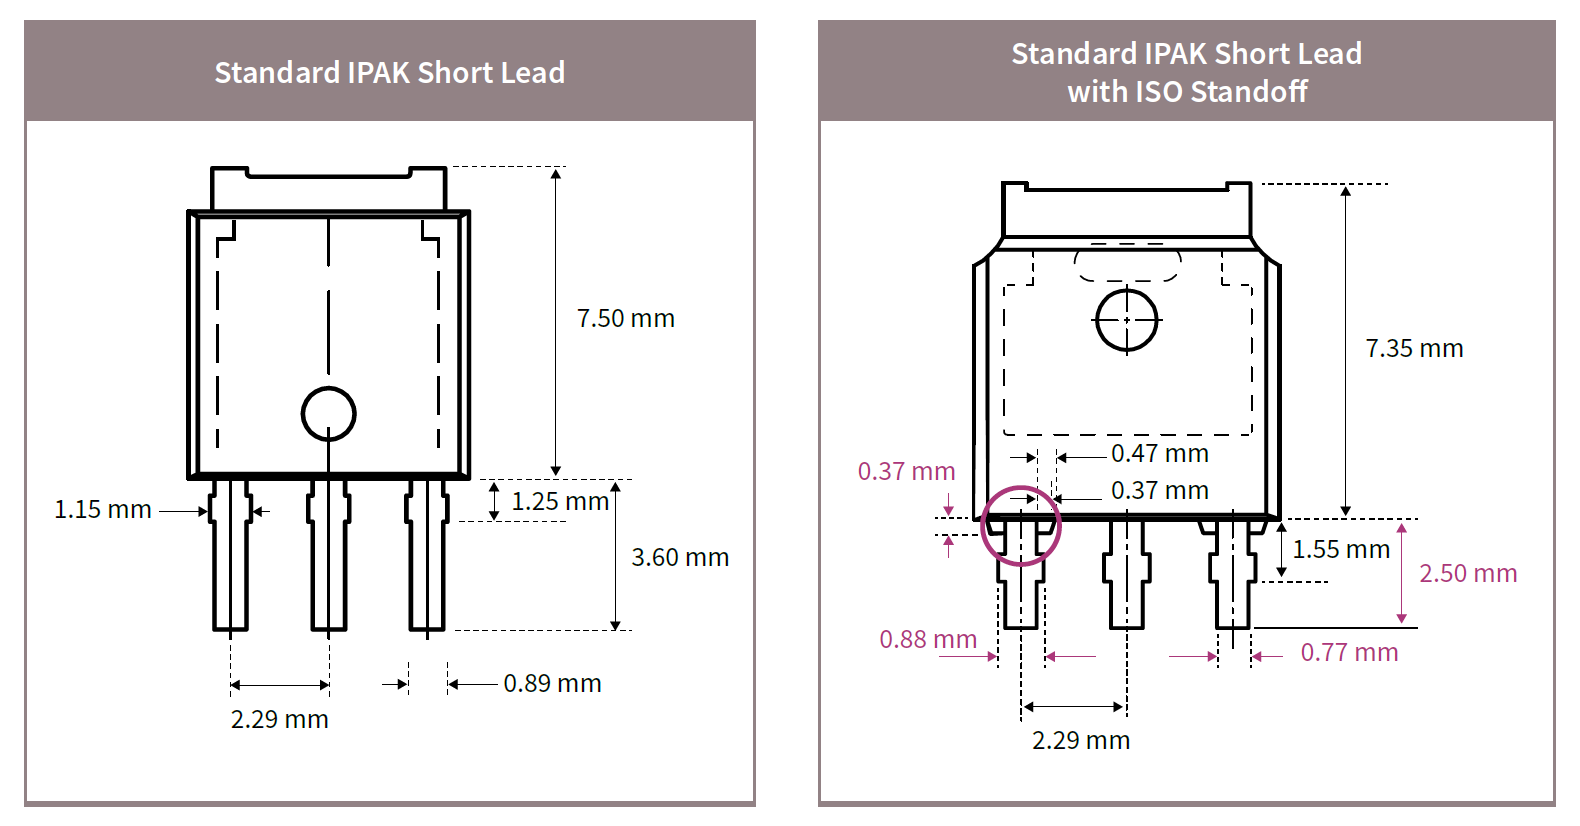 Ipak Short Lead With Iso Standoff Infineon Technologies Heating Rectifier Tube Fullwave And Filter Circuit Diagram Visualization Of Package Fully Inserted Into Pcb The Mold Features At Bottom Make Sure That